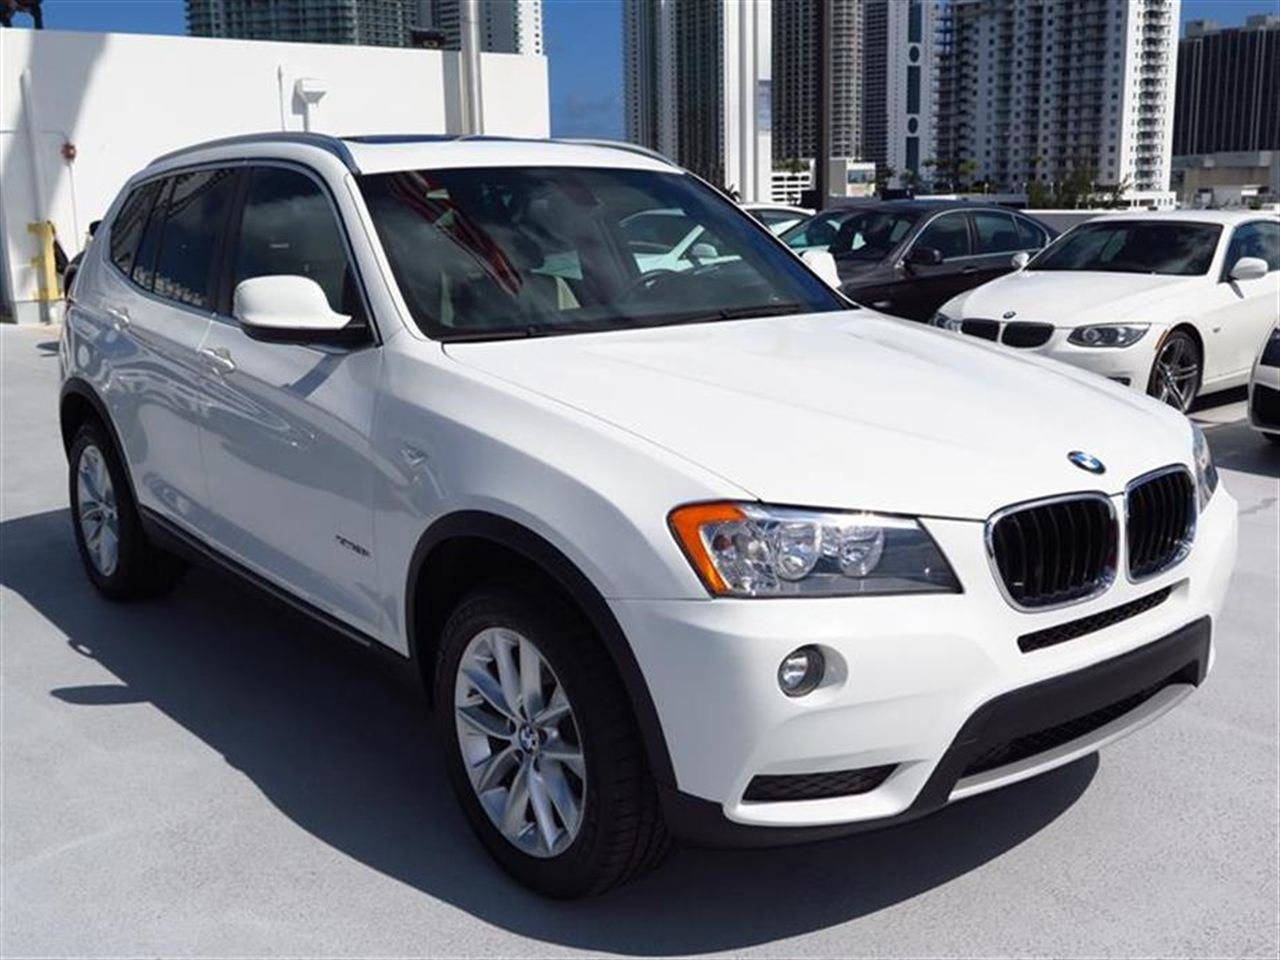 2013 BMW X3 AWD 4dr xDrive28i 26885 miles 3-spoke leather-wrapped multi-function sport steering w